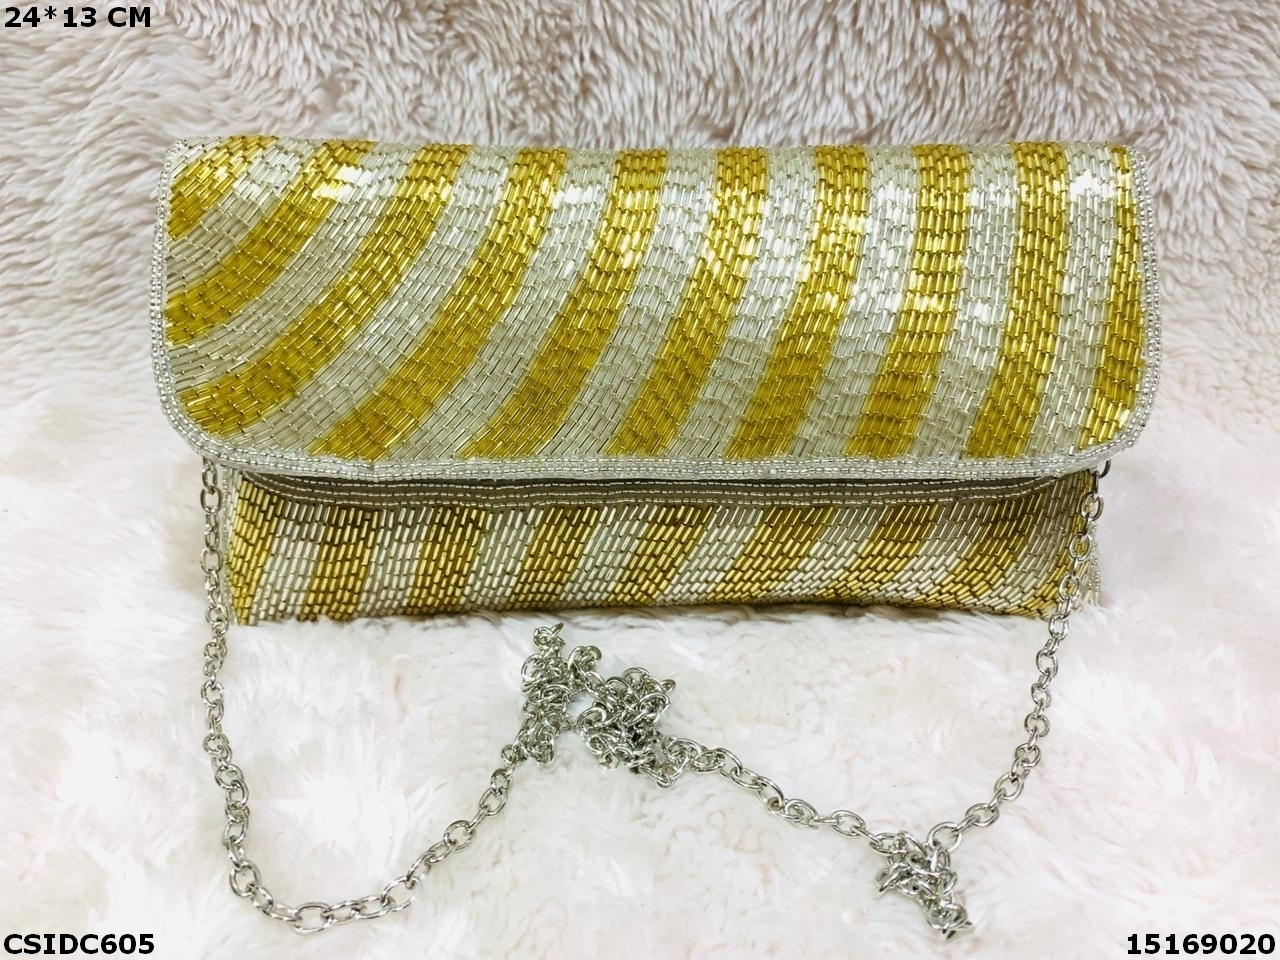 Stylish Bridal Clutch Bag